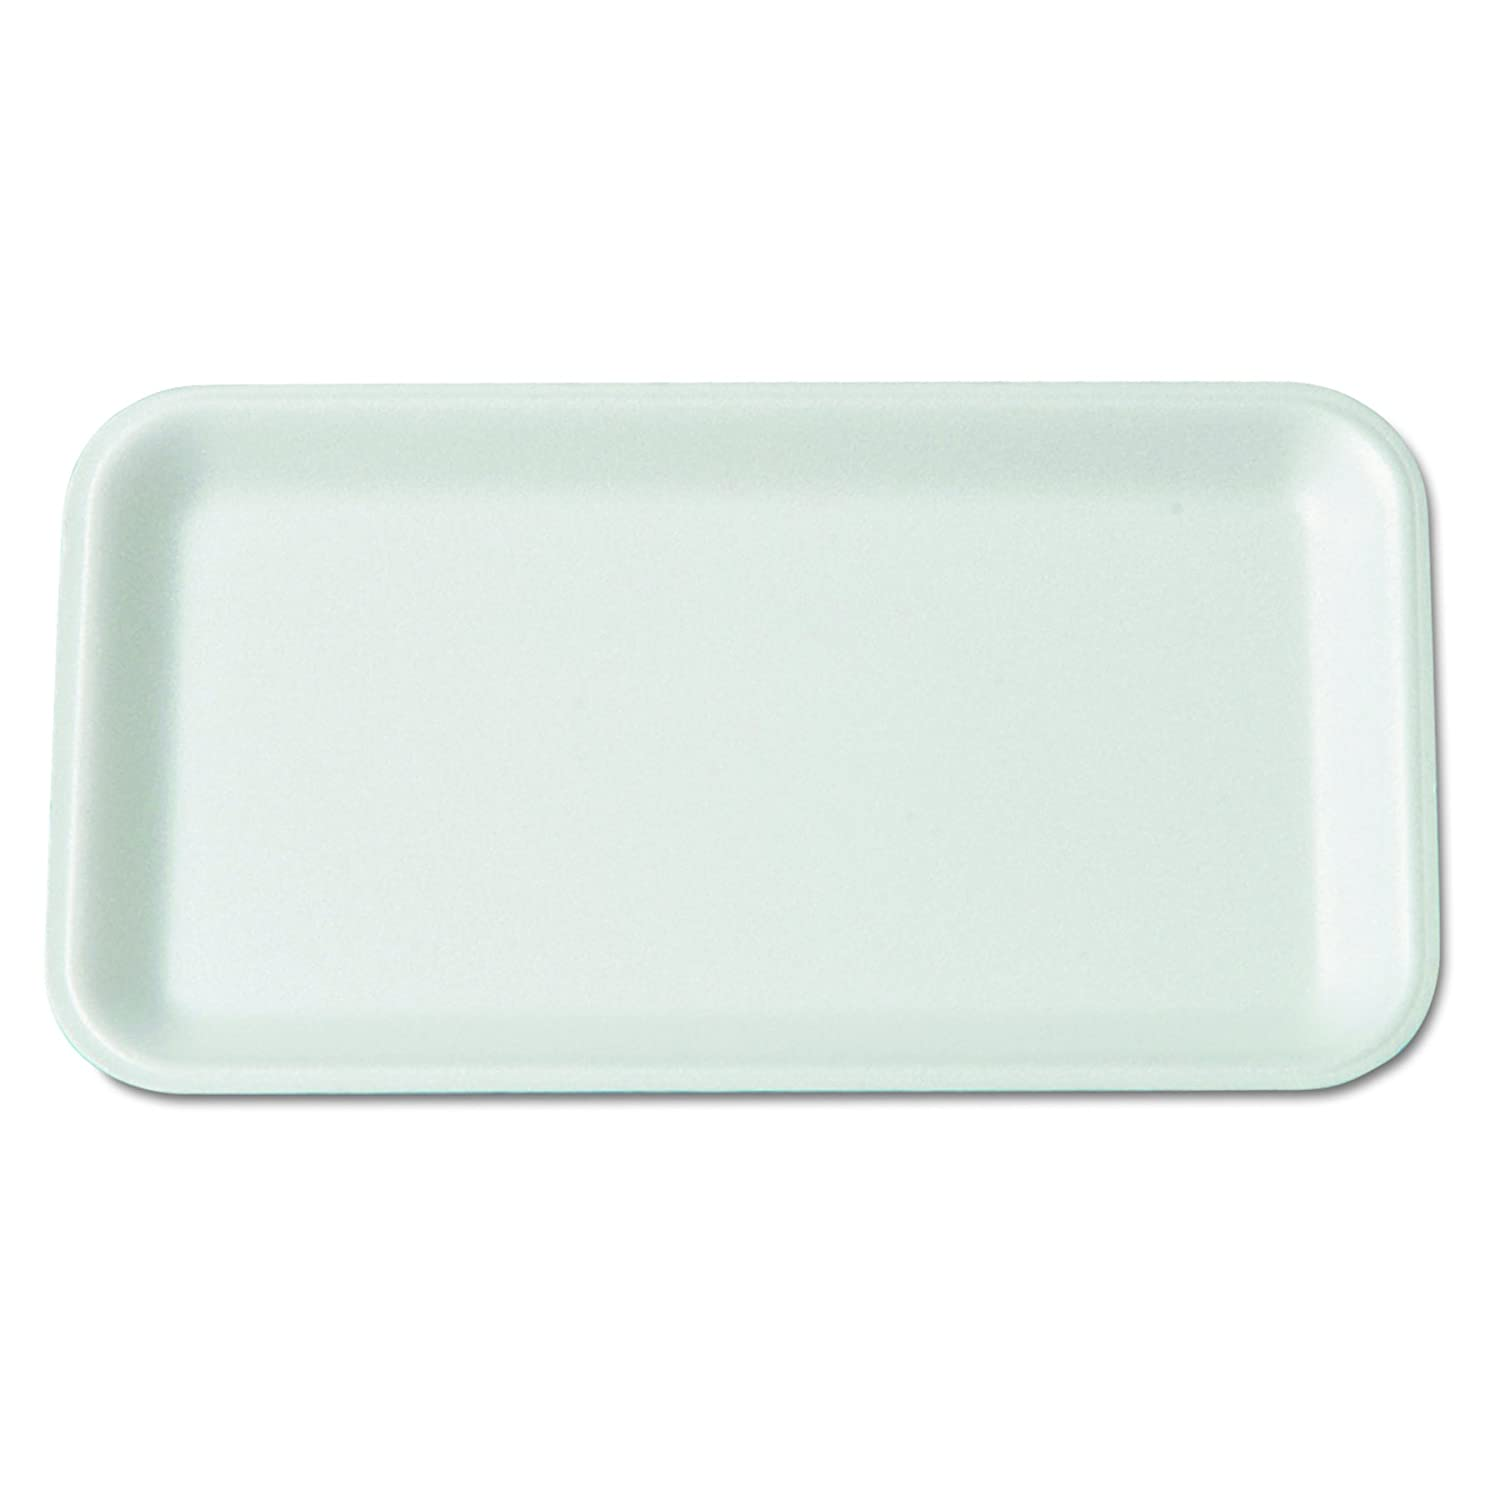 Genpak 17SWH 8-1/4-Inch Length by 4-3/4-Inch Width by 1/2-Inch Height White Color Foam Meat Standard Supermarket Food Tray 125-Pack (Case of 4)